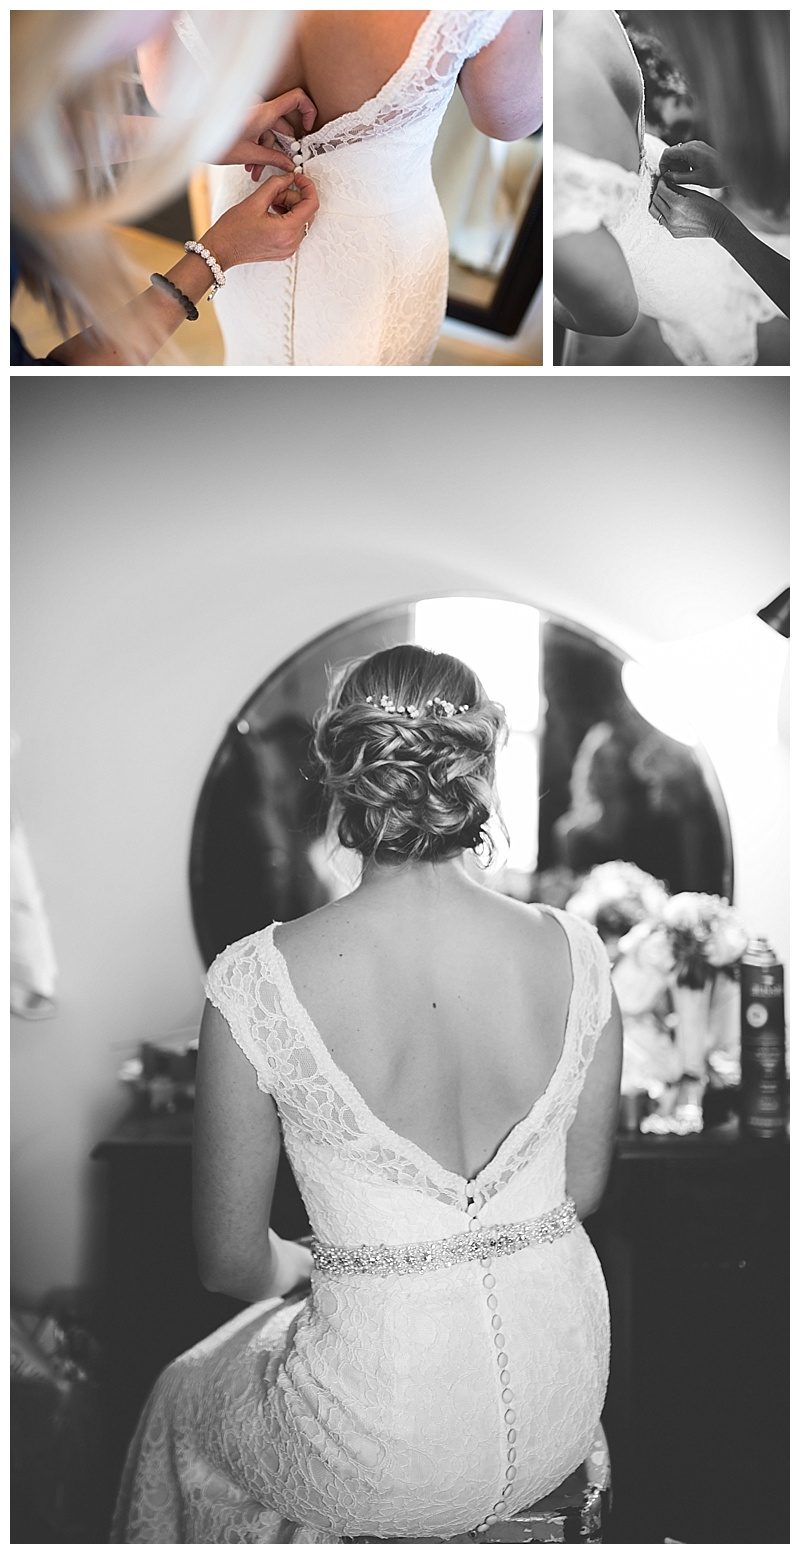 tulsa-bride-wedding-photographer